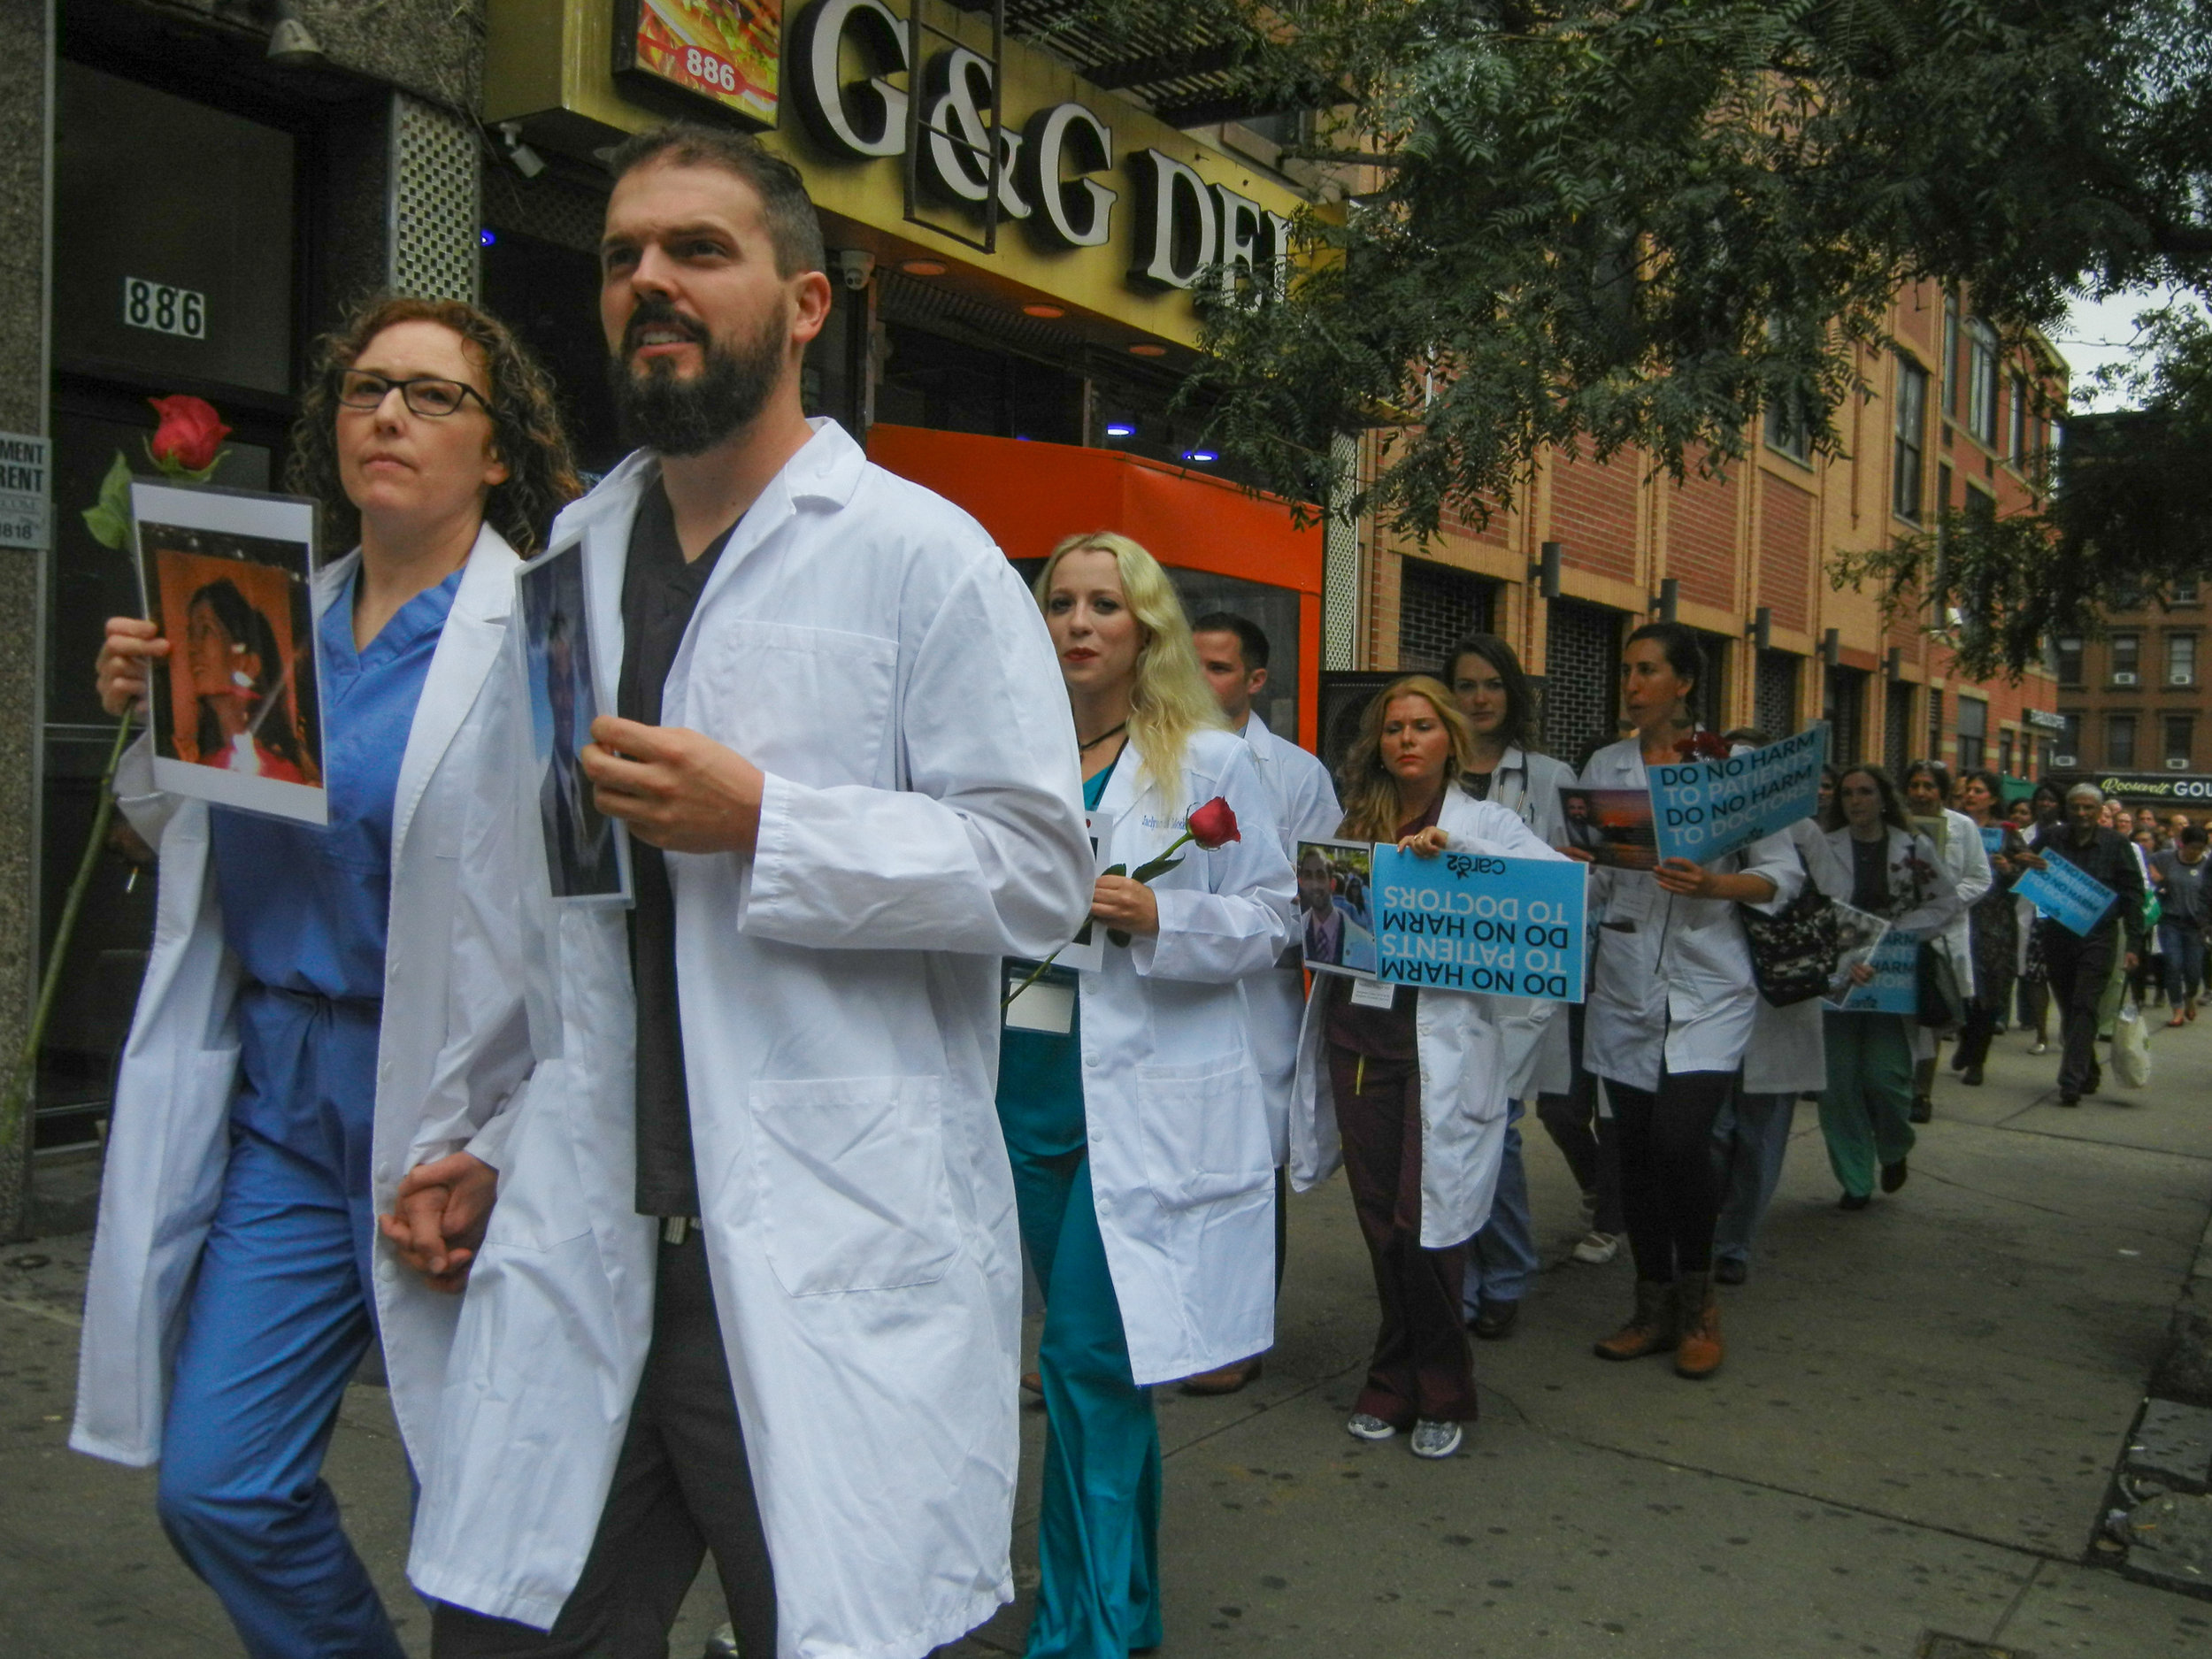 A procession of doctors, nurses, and medical professionals walk through Hell's Kitchen hand-in-hand in honor of their lost colleagues | Carolyn Adams